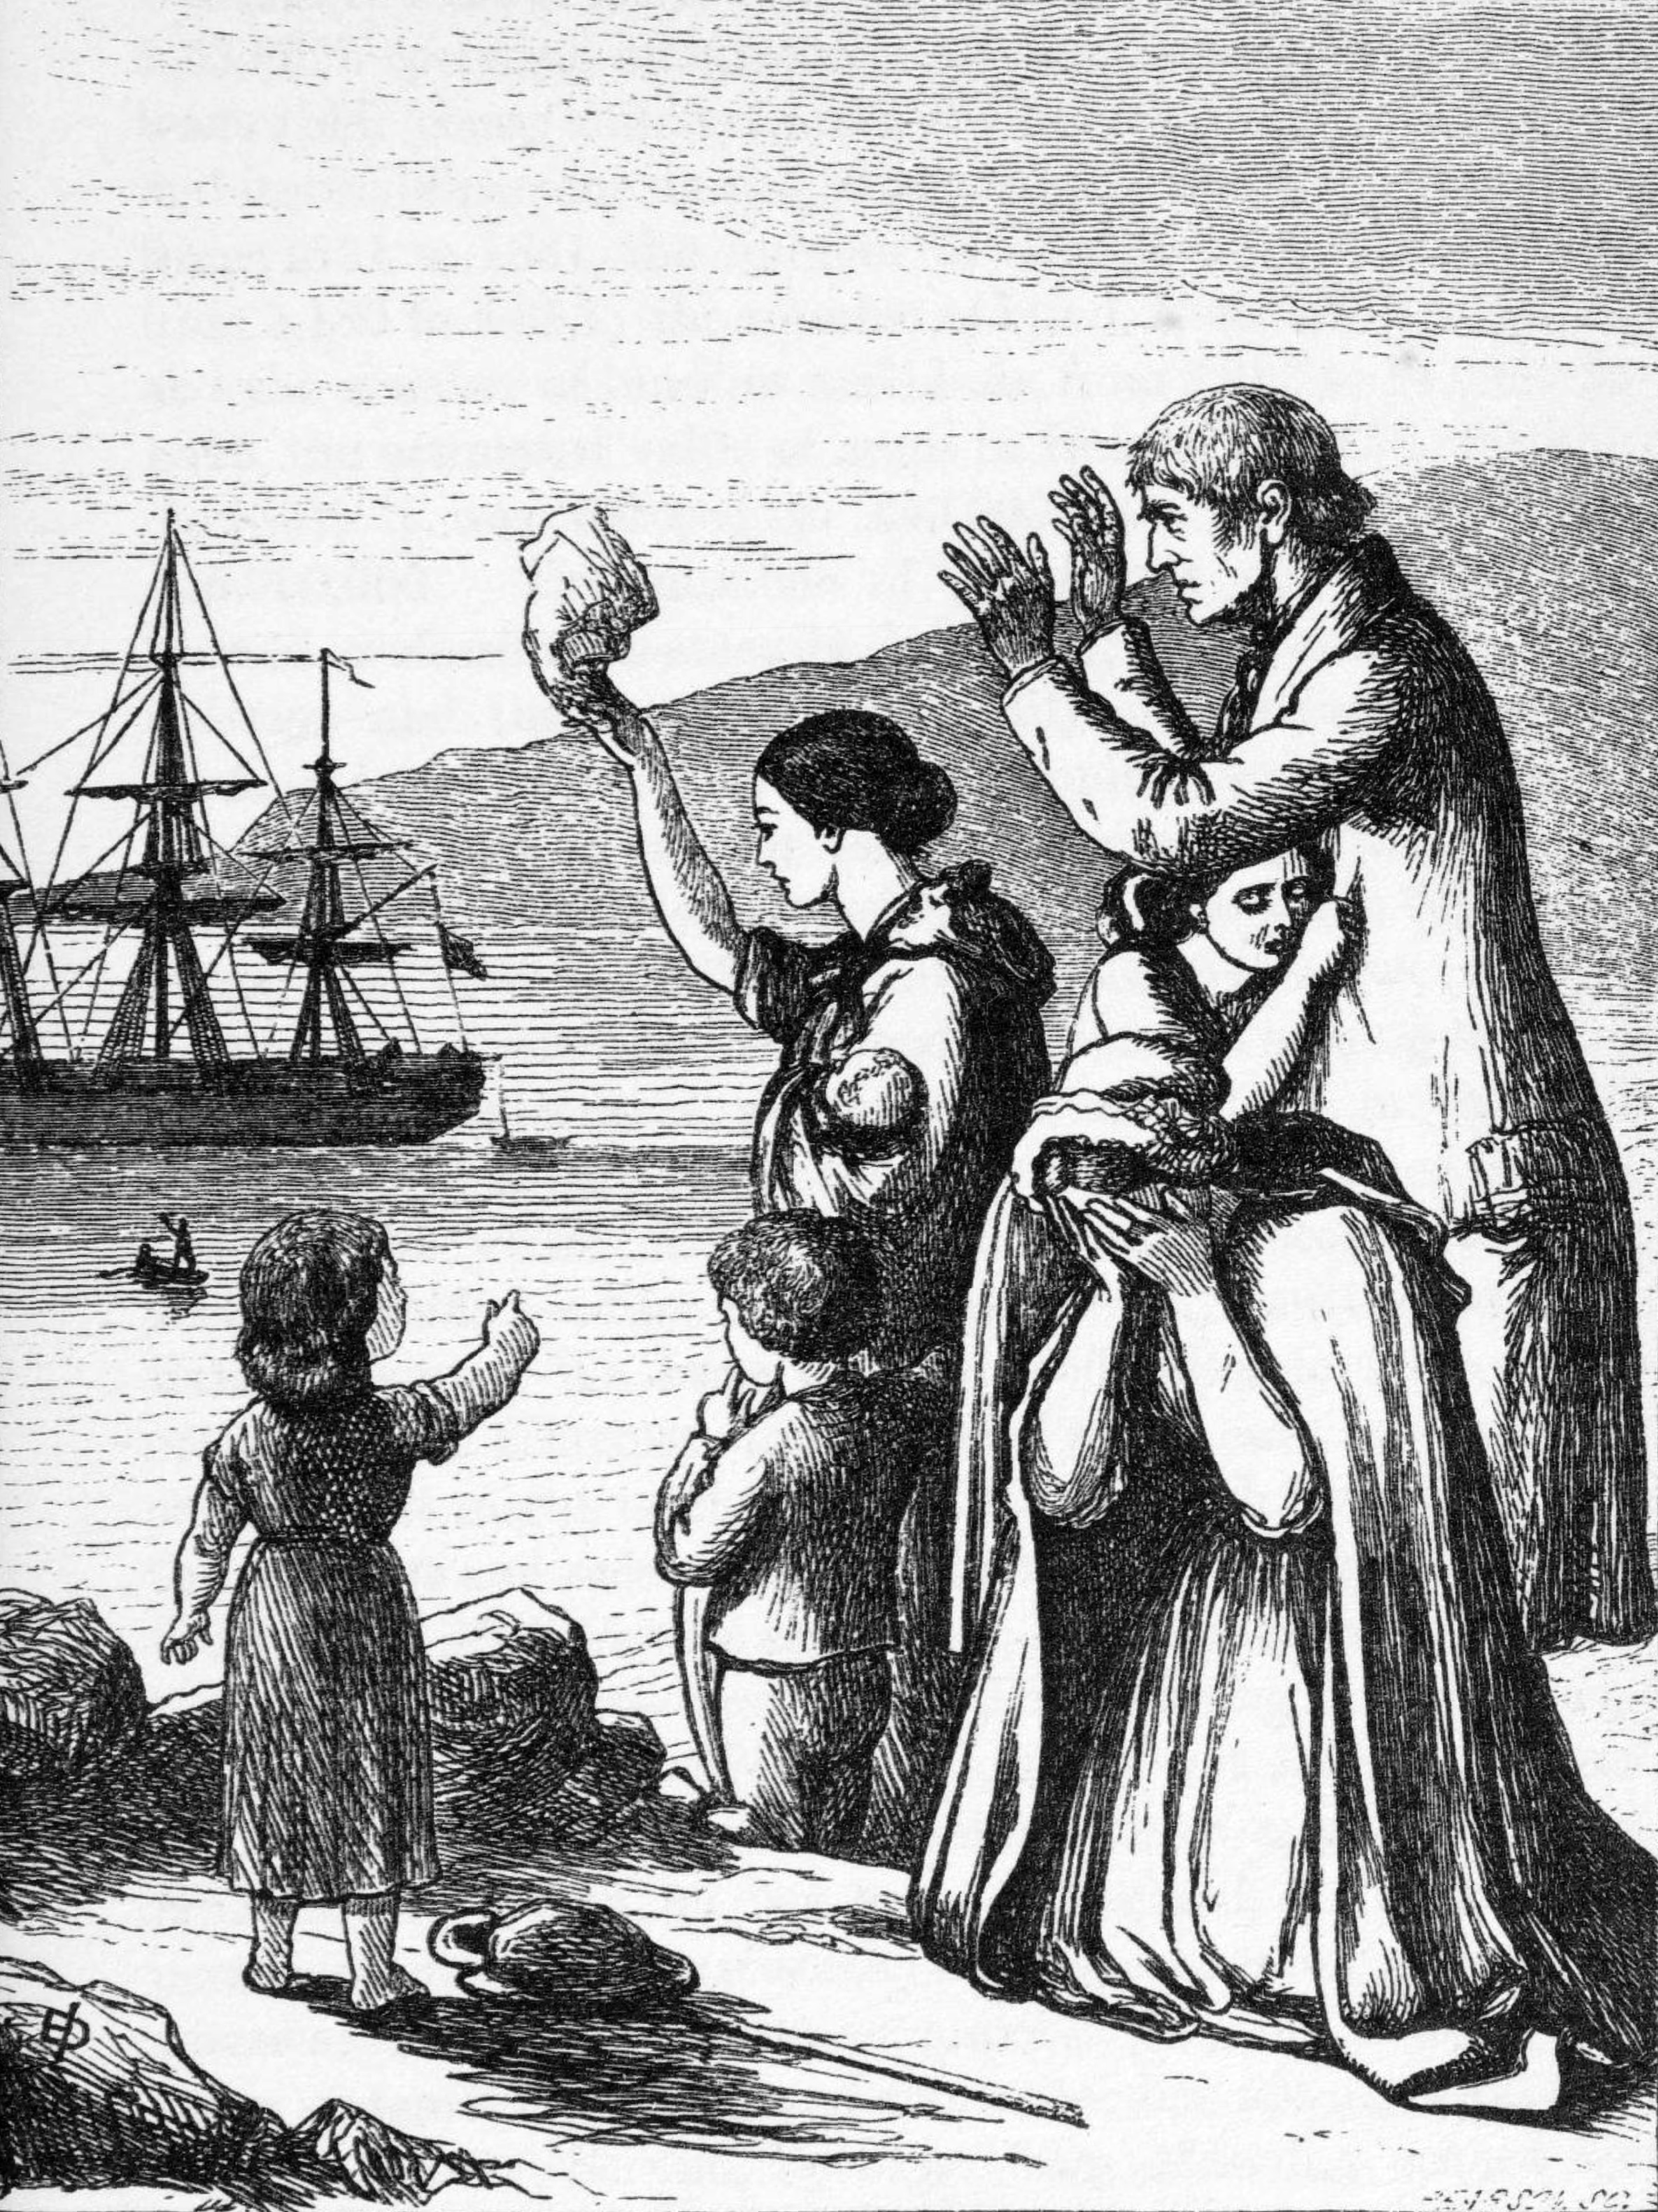 engraving of 'Emigrants leaving Ireland'